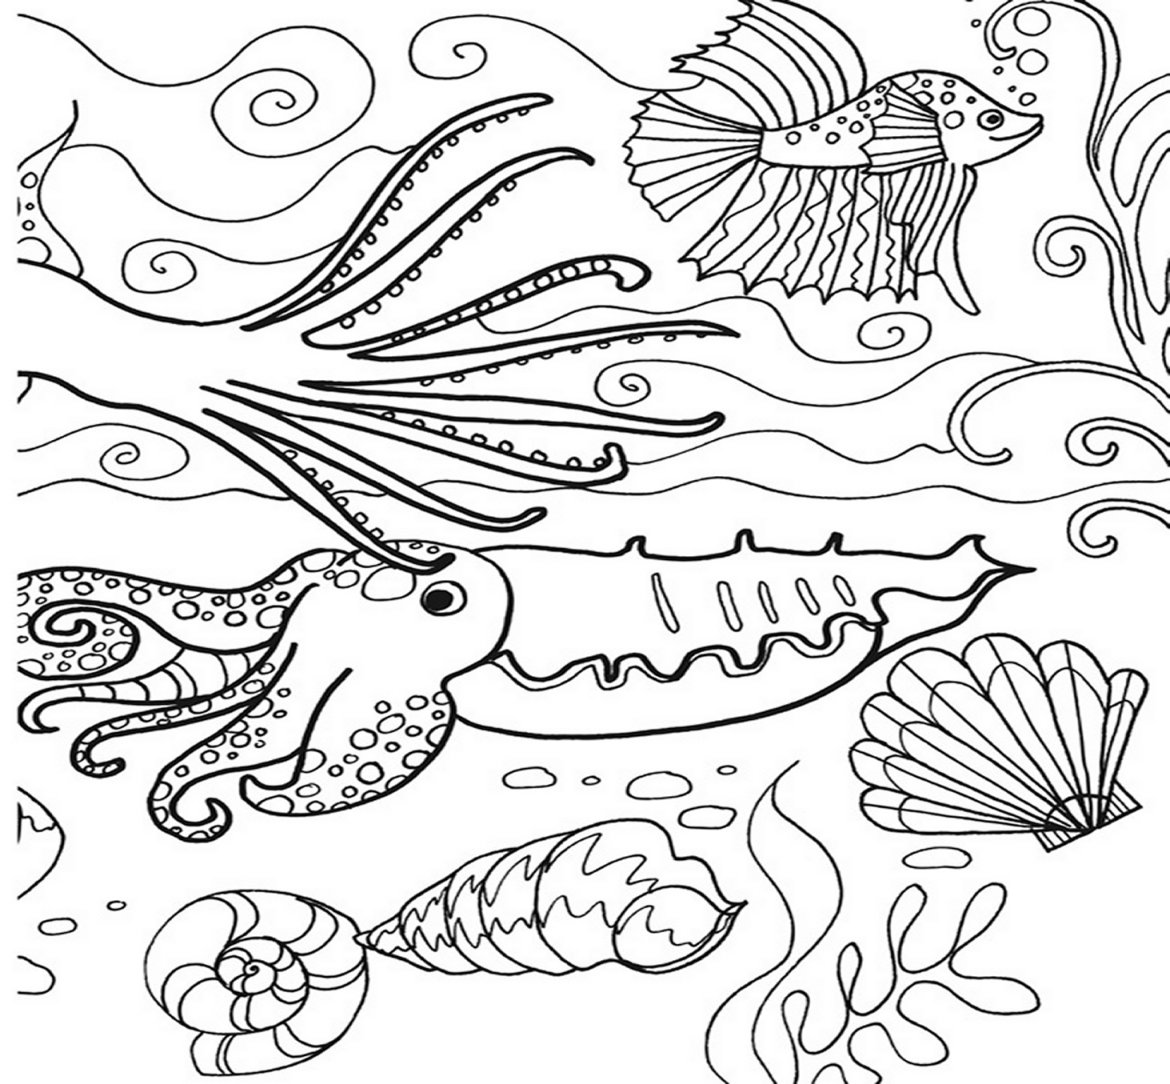 1170x1084 Under The Sea Coloring Pages Montenegroplaze Me Ribsvigyapan Sea